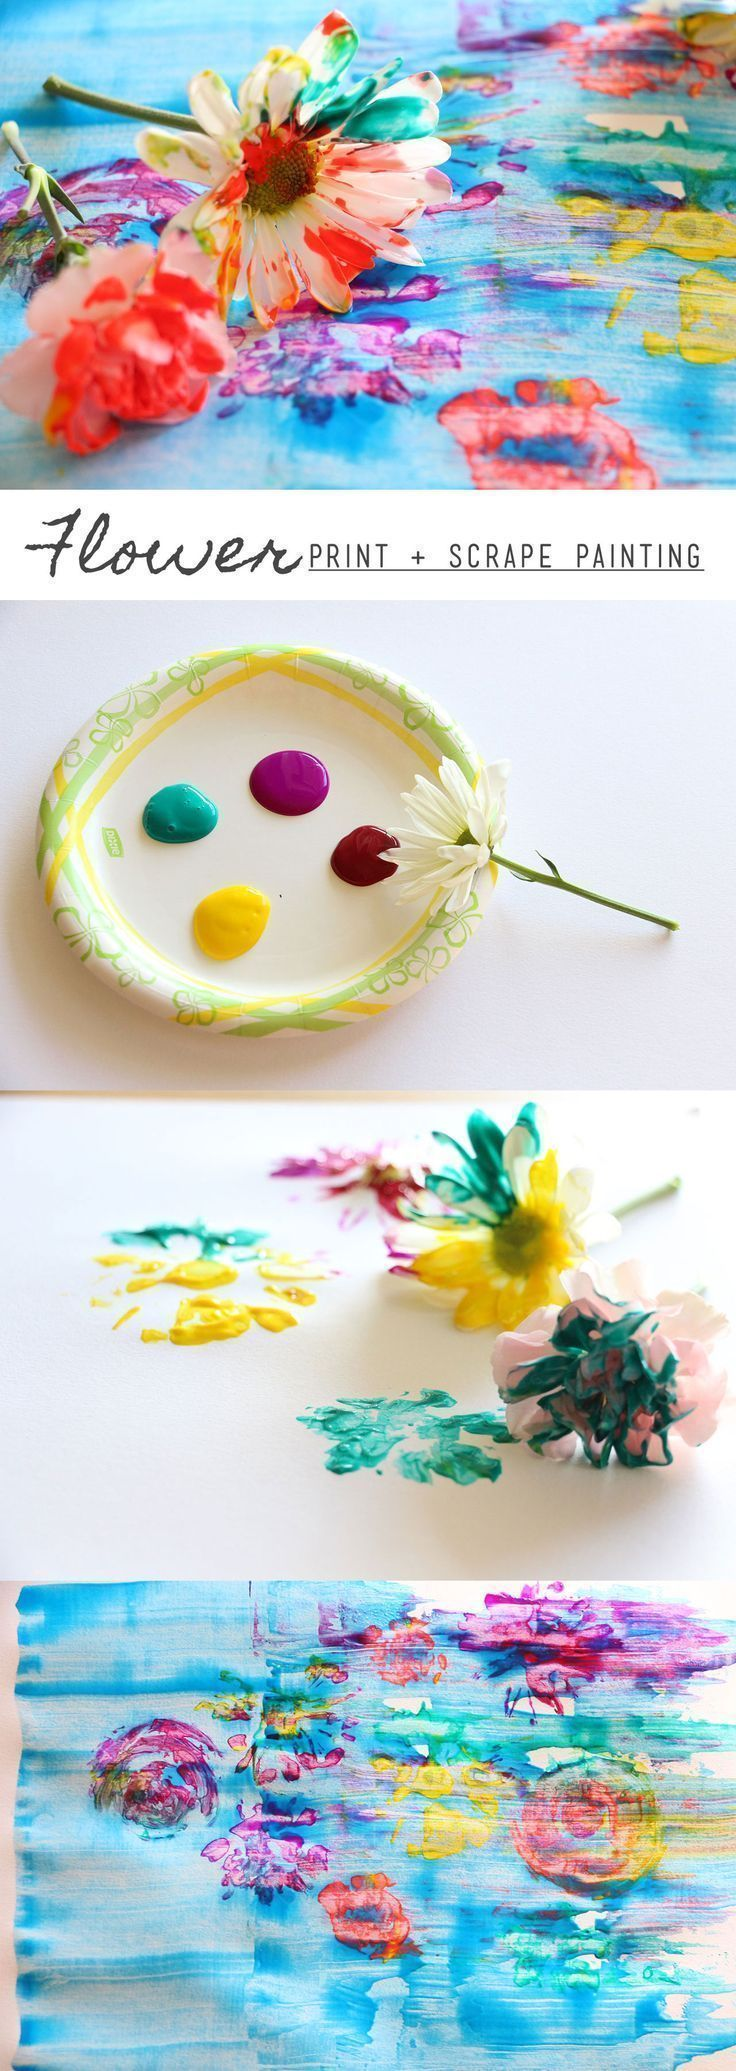 Kids love to make these flower paintings! Extend the fun even more by introducing kids to the work of Monet: give them a scraper to turn their art project into an Impressionist painting.